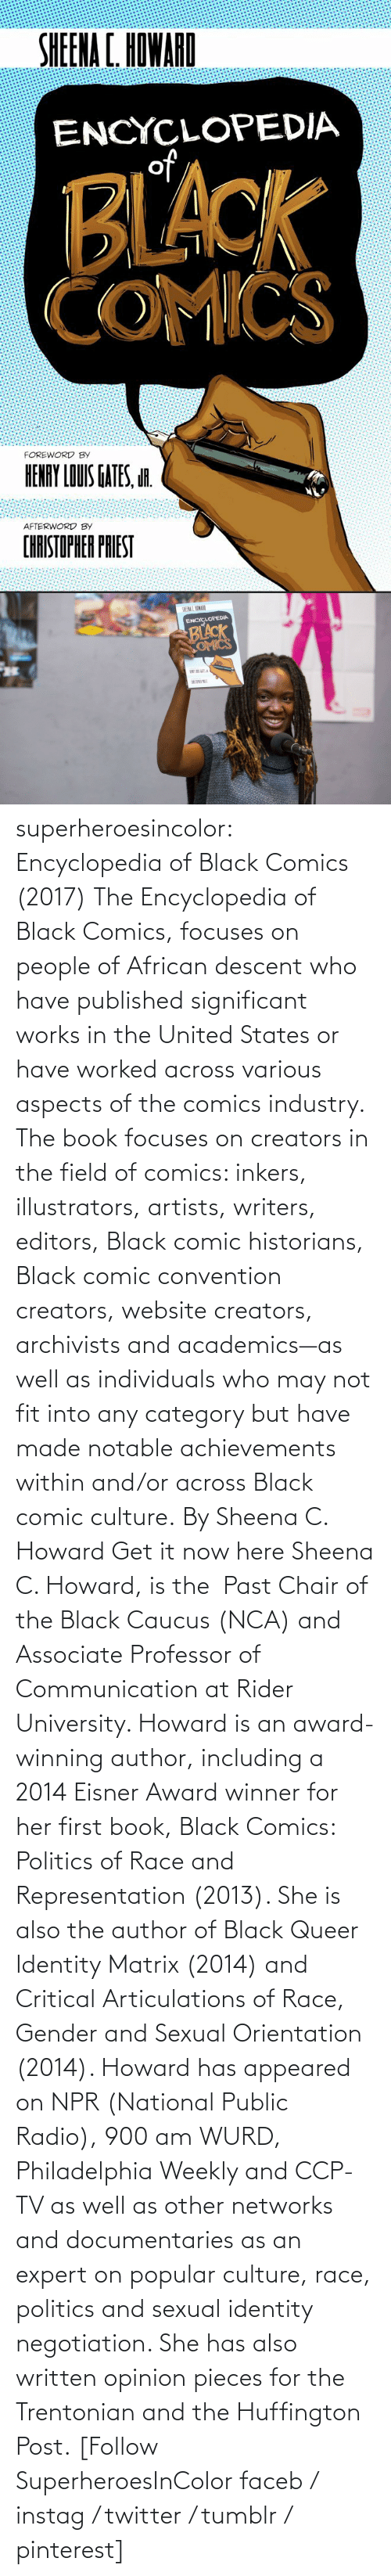 Race: superheroesincolor: Encyclopedia of Black Comics (2017) The Encyclopedia of Black Comics, focuses on people of African descent who have published significant works in the United States or have worked across various aspects of the comics industry.  The book focuses on creators in the field of comics: inkers, illustrators, artists, writers, editors, Black comic historians, Black comic convention creators, website creators, archivists and academics—as well as individuals who may not fit into any category but have made notable achievements within and/or across Black comic culture. By Sheena C. Howard Get it now here  Sheena C. Howard, is the  Past Chair of the Black Caucus (NCA) and Associate Professor of Communication at Rider University. Howard is an award-winning author, including a 2014 Eisner Award winner for her first book, Black Comics: Politics of Race and Representation (2013). She is also the author of Black Queer Identity Matrix (2014) and Critical Articulations of Race, Gender and Sexual Orientation (2014). Howard has appeared on NPR (National Public Radio), 900 am WURD, Philadelphia Weekly and CCP-TV as well as other networks and documentaries as an expert on popular culture, race, politics and sexual identity negotiation. She has also written opinion pieces for the Trentonian and the Huffington Post.   [Follow SuperheroesInColor faceb / instag / twitter / tumblr / pinterest]